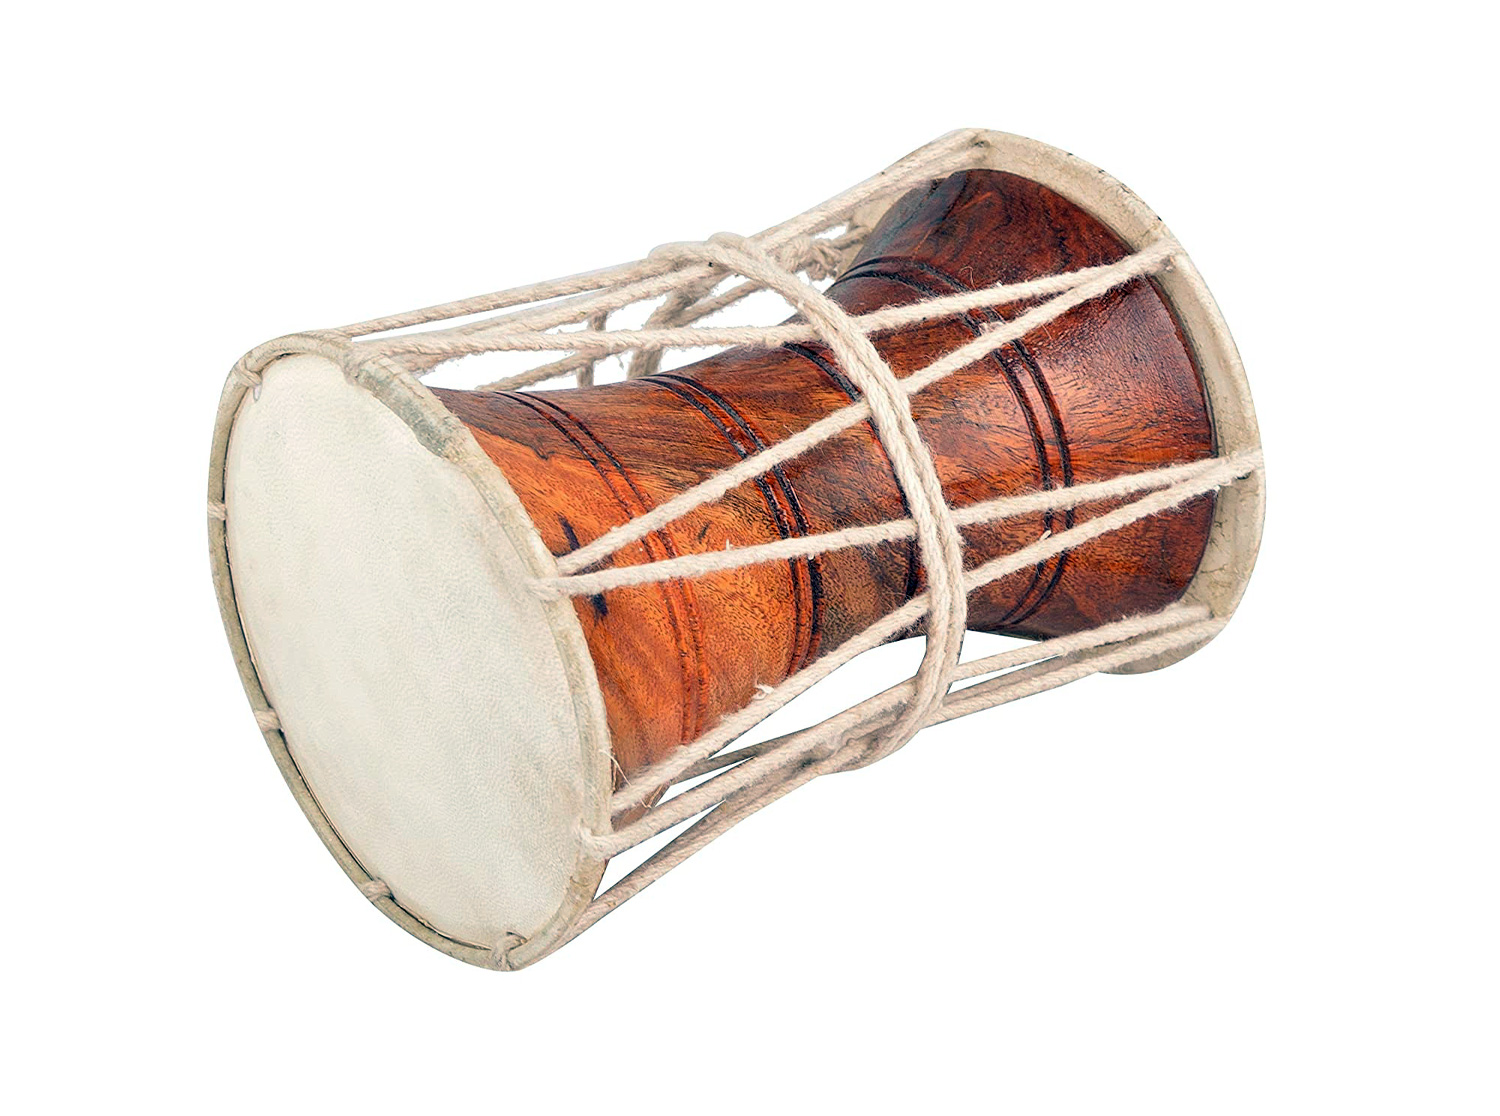 Traditional-Drums-of-India-Dhad